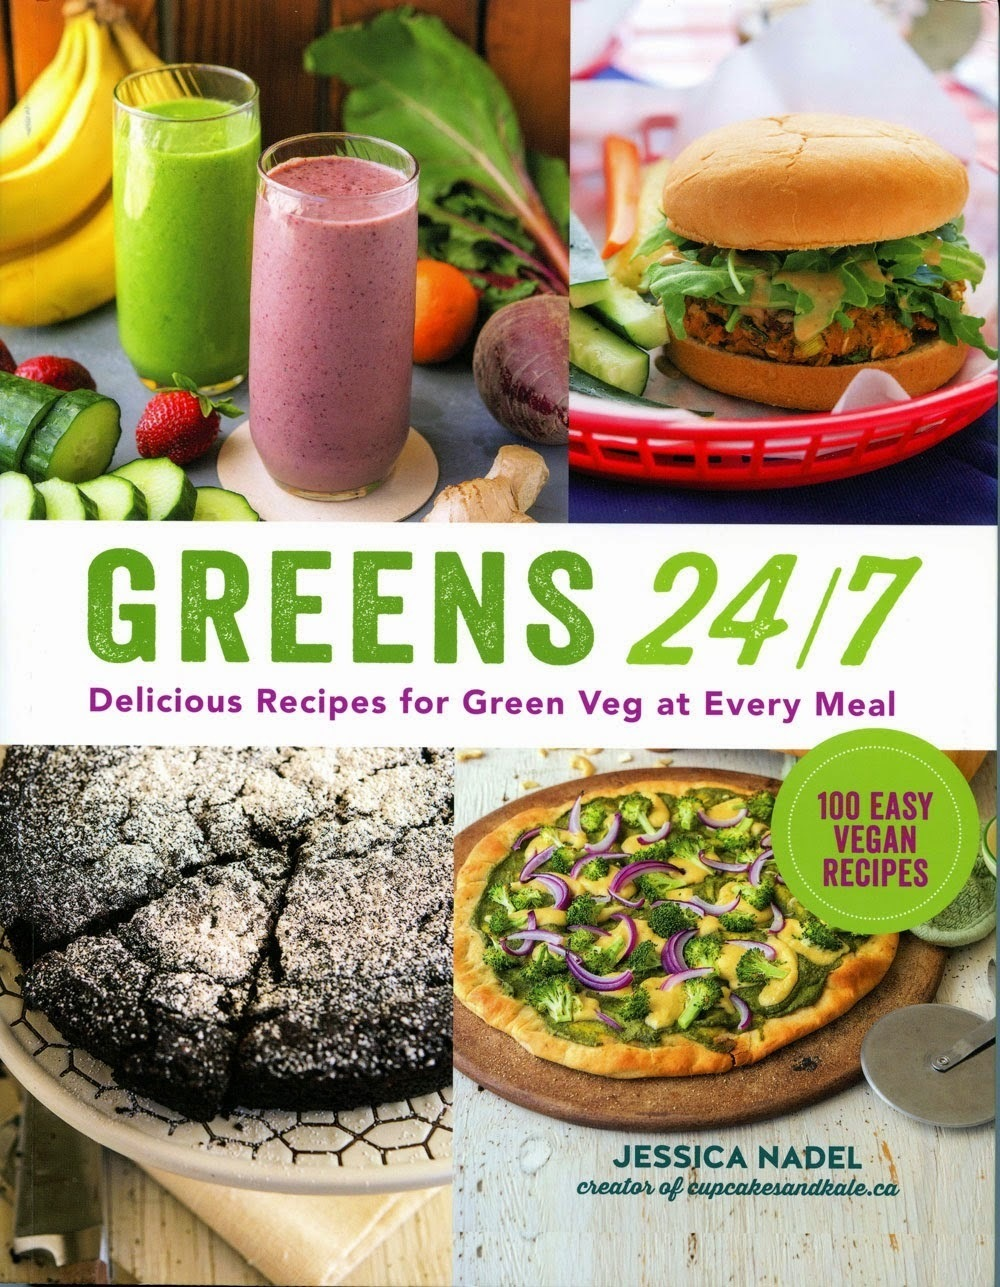 Greens 24/7: Delicious Recipes for Green Veg at Every Meal, Review and Giveaway.